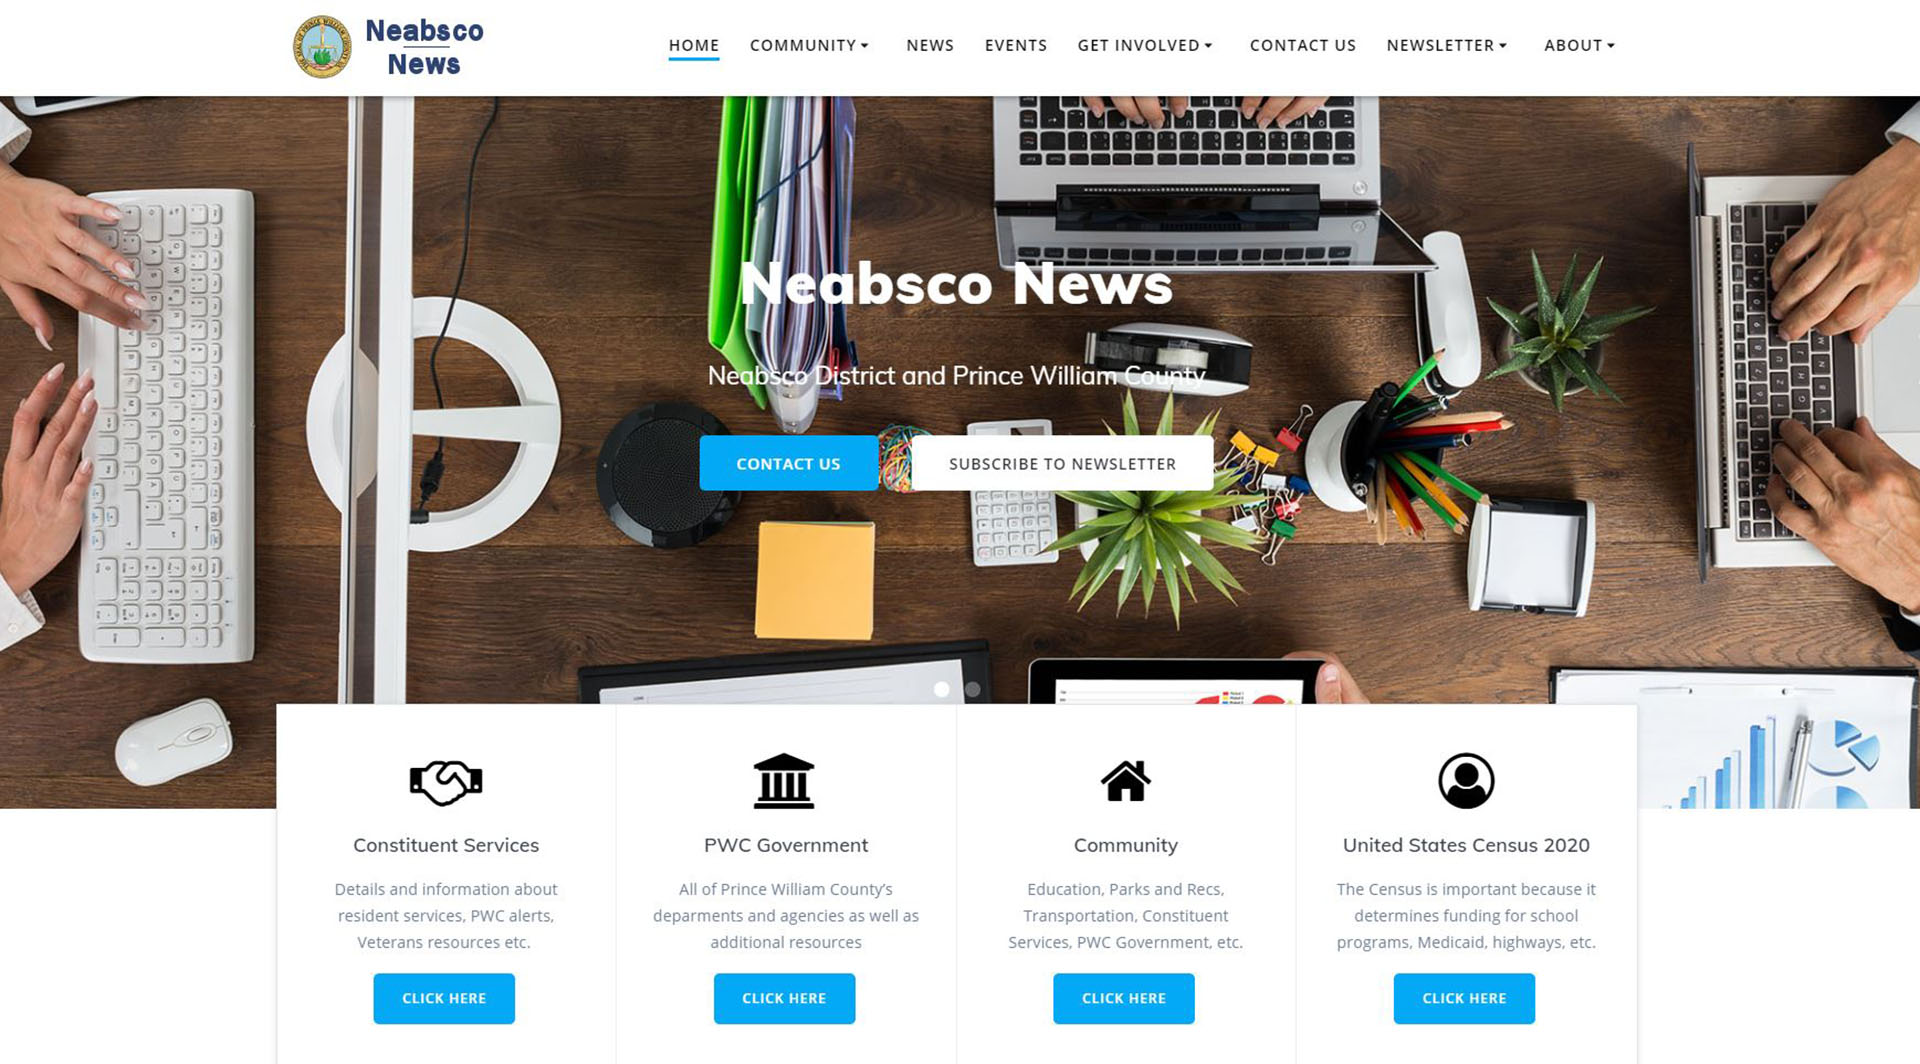 Neabsco News media outlet launches